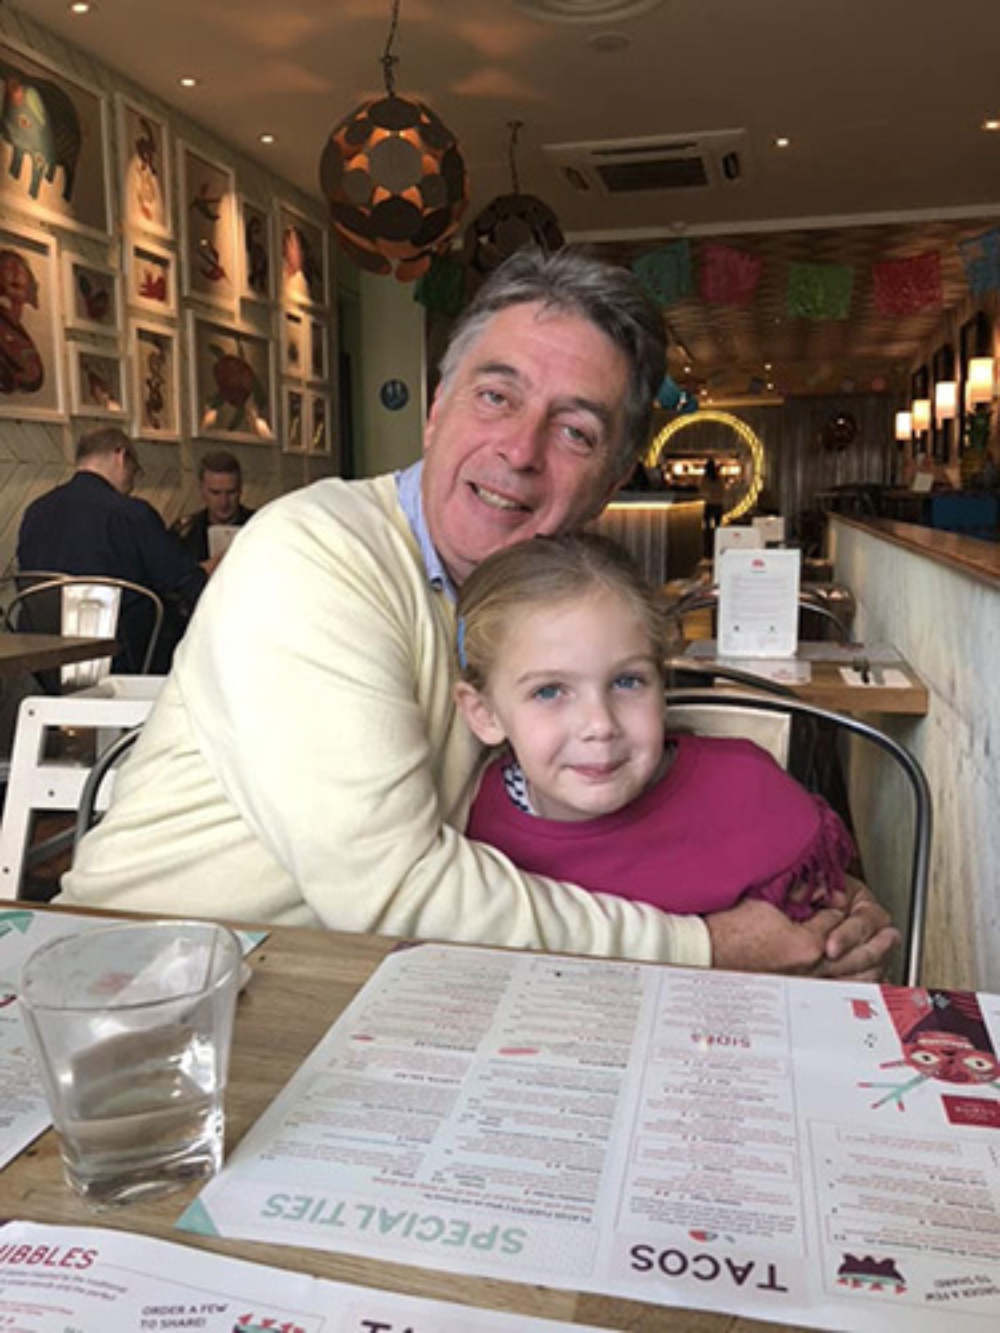 Grandfather Julian, holding his granddaughter, Maddison, in a restaurant